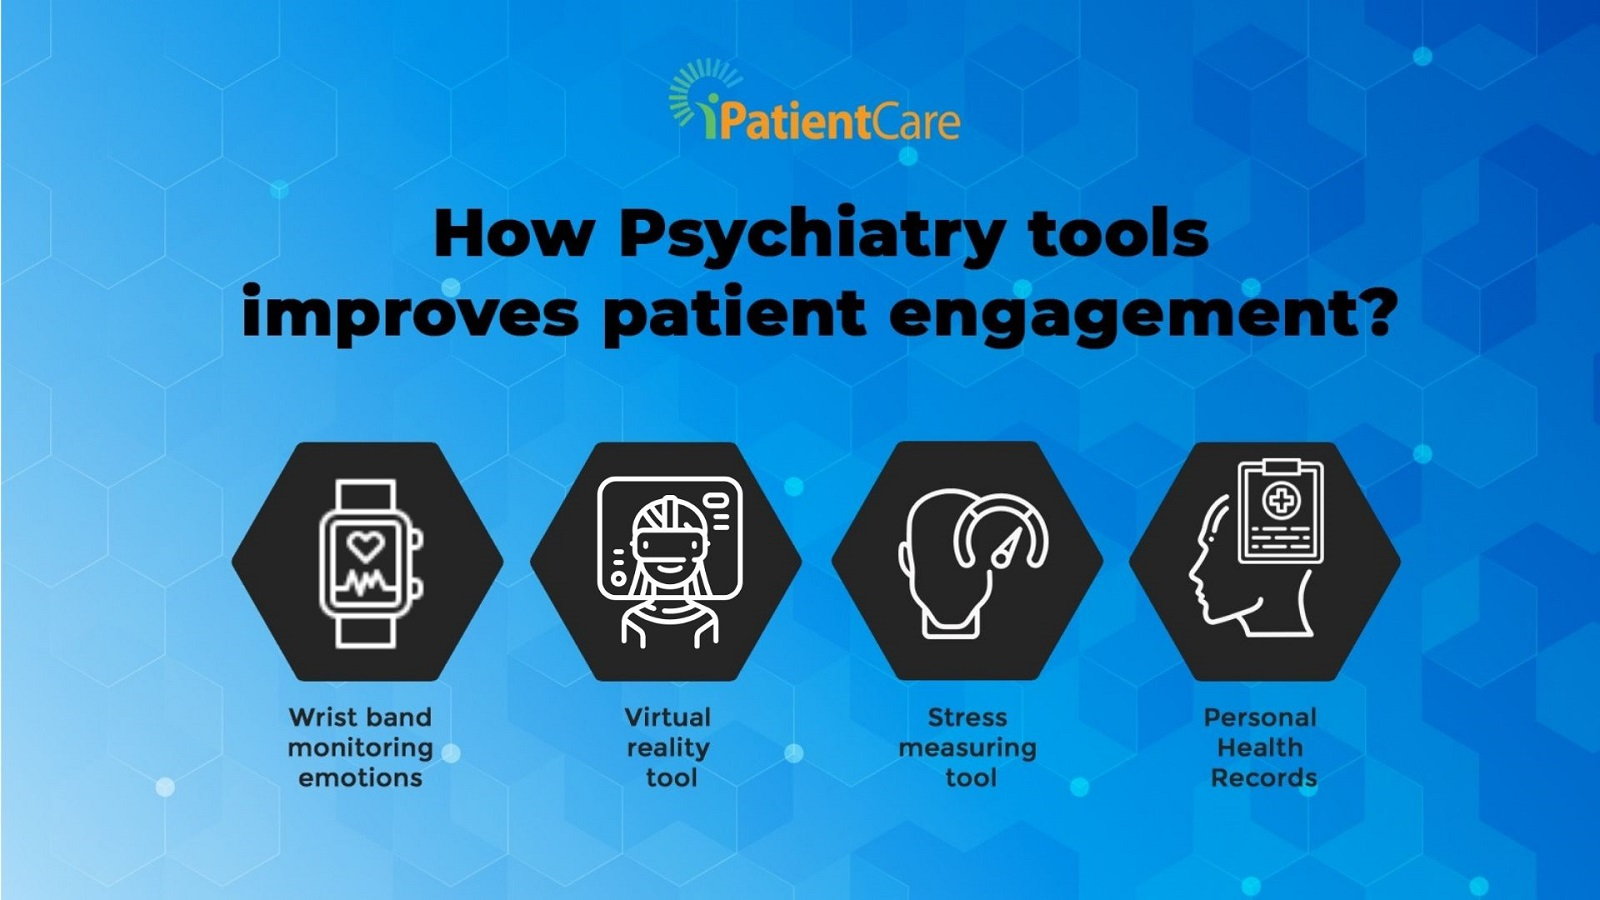 iPatientCare Blog - How Psychiatry tools improves patient engagement